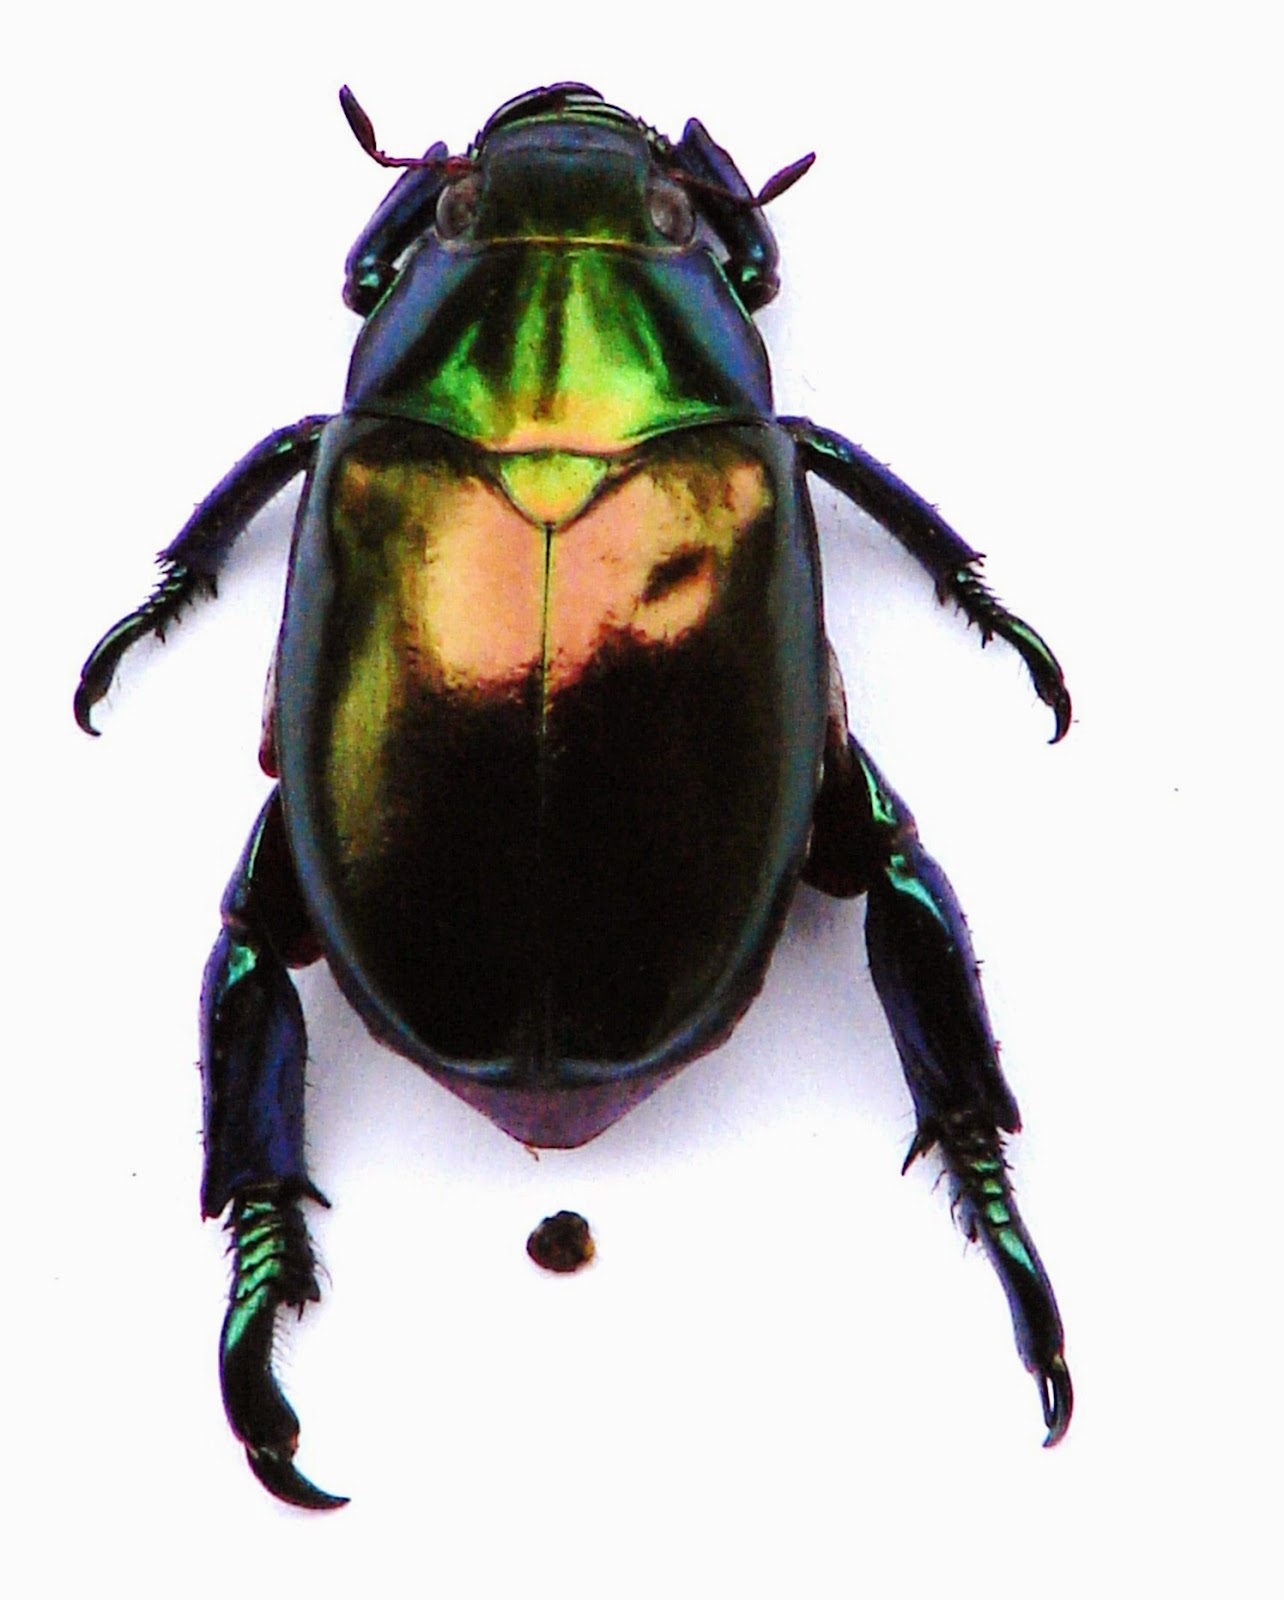 Metallic beetle